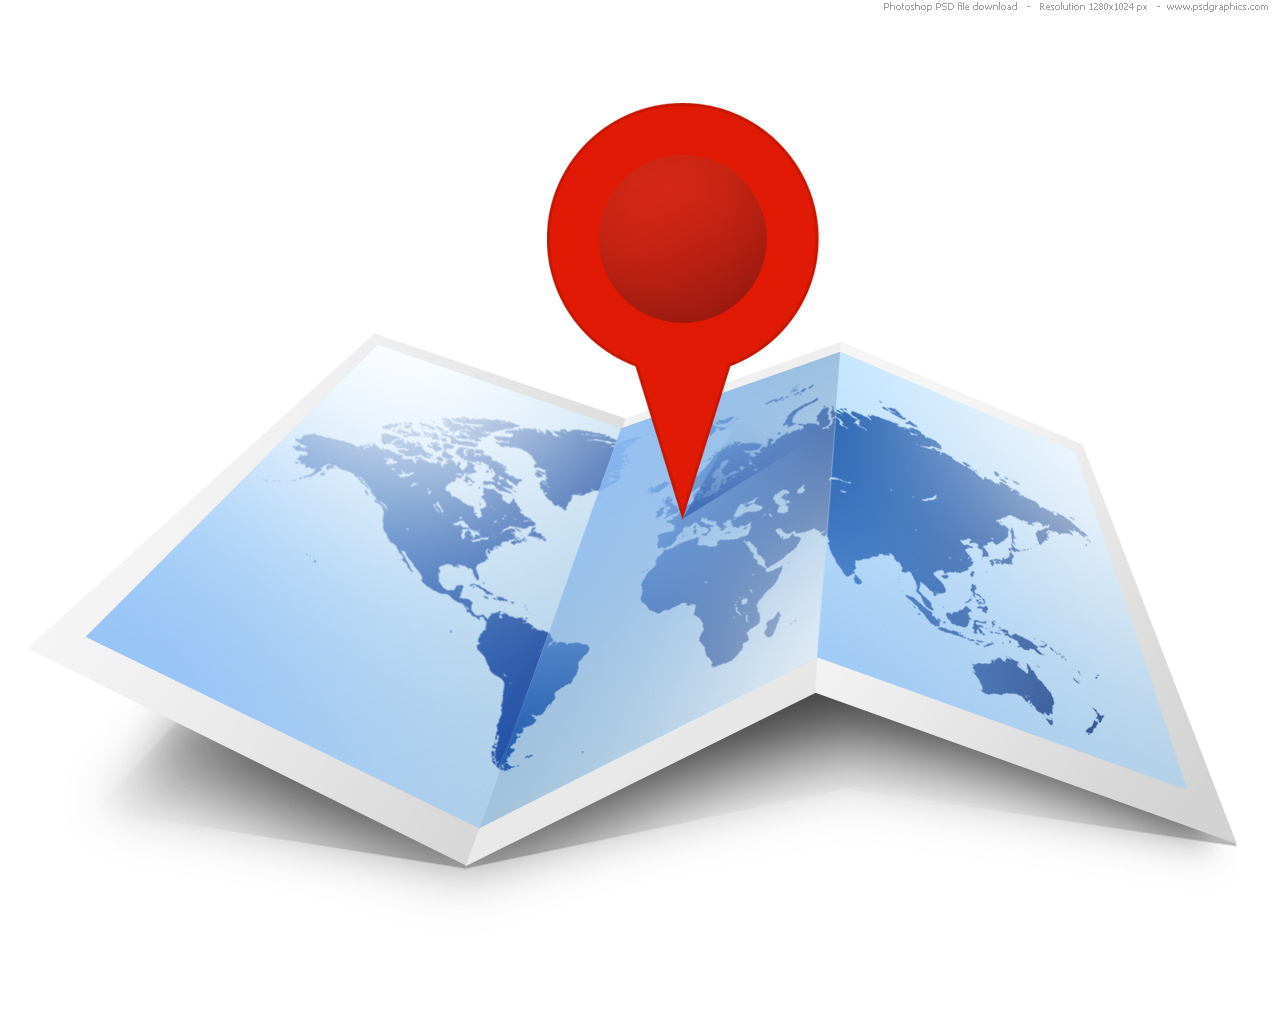 Psd world map icon psdgraphics blue map with red pin world map icon format psd gumiabroncs